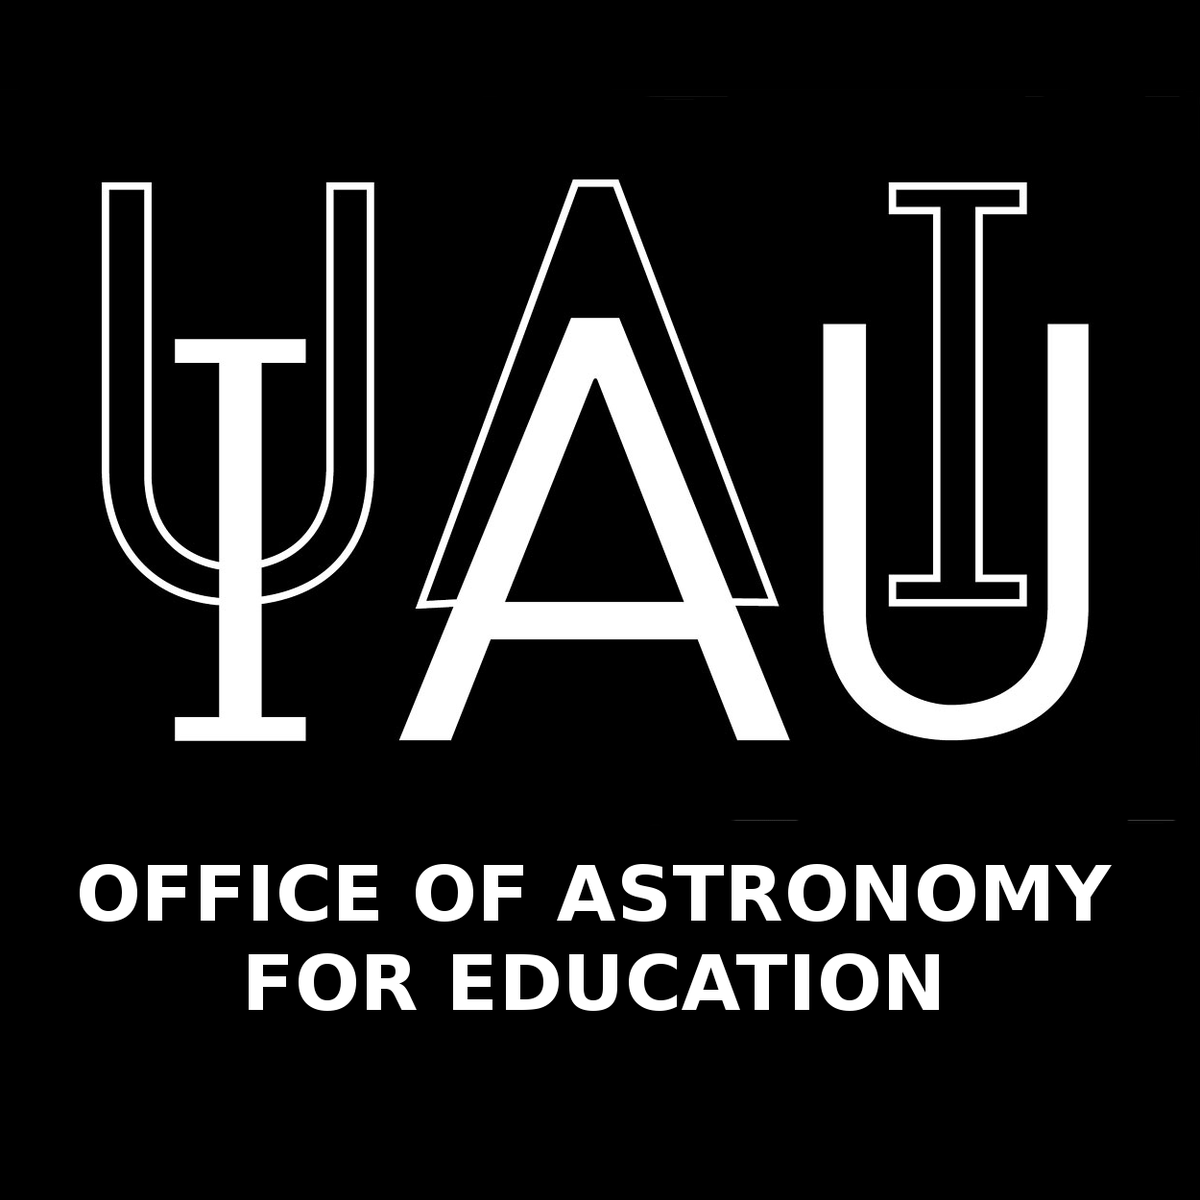 #Astro4Edu The @astro4edu is still accepting applications to join the IAU National Astronomy Education Coordinator (NAEC) Teams members. Learn more about the role and application here: haus-der-astronomie.de/oae/naec-role